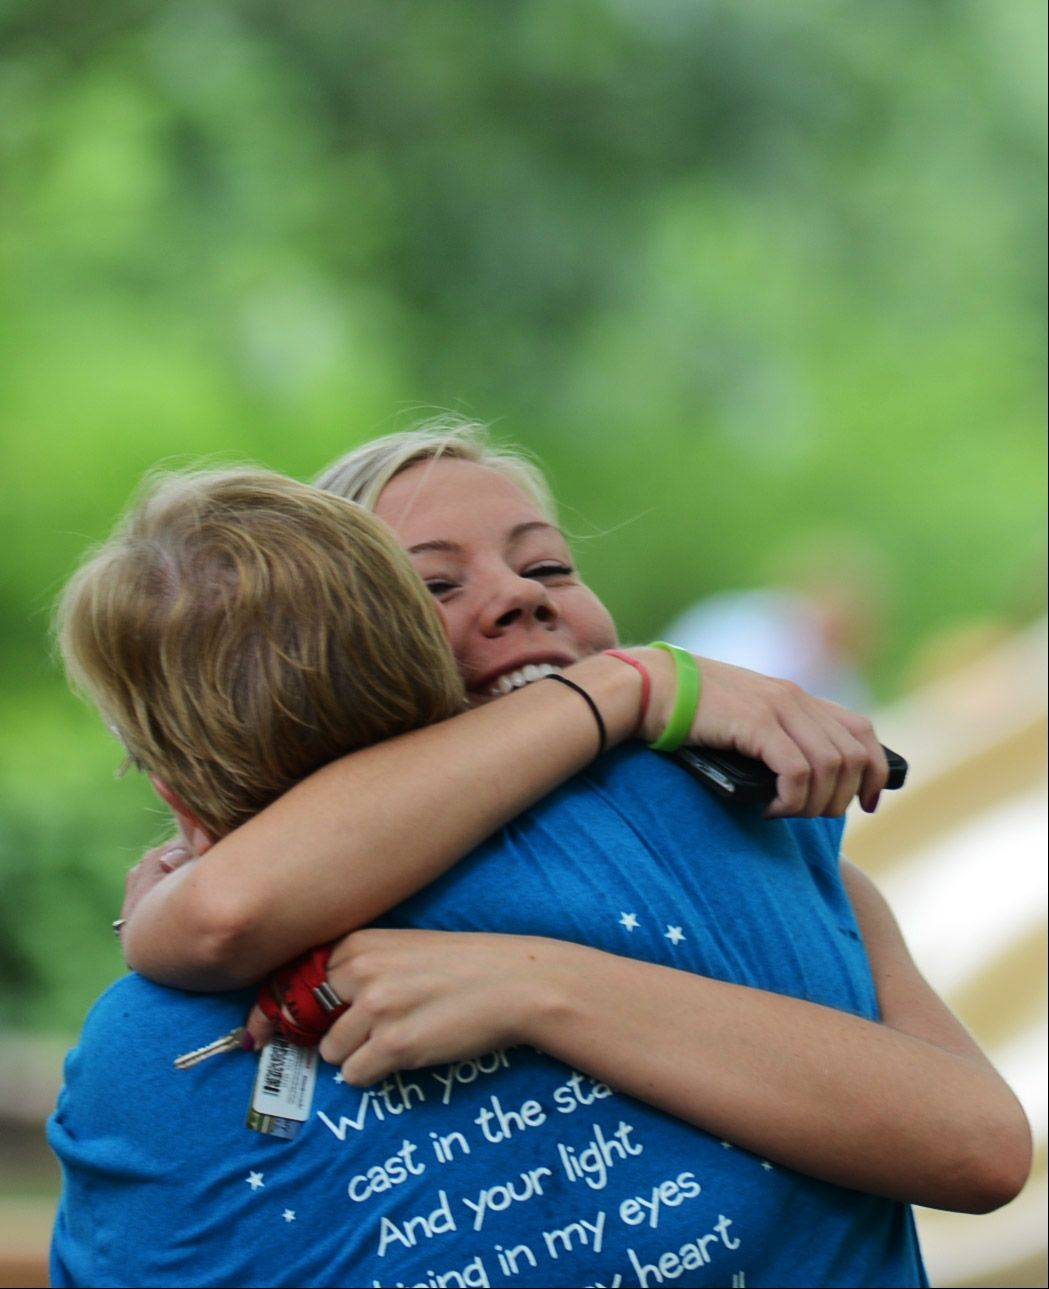 Mel Schlenker, 21, hugs Donna Mebane, mother of Emma Mebane, 19, who passed away suddenly in 2011. The Emma Memorial Mini-Golf Tournament at Stone Creek course took place Sunday at Wheeler Park in Geneva and allowed for family and friends to gather in remembrance of Emma. Mebane and Schlenker are both from Geneva.